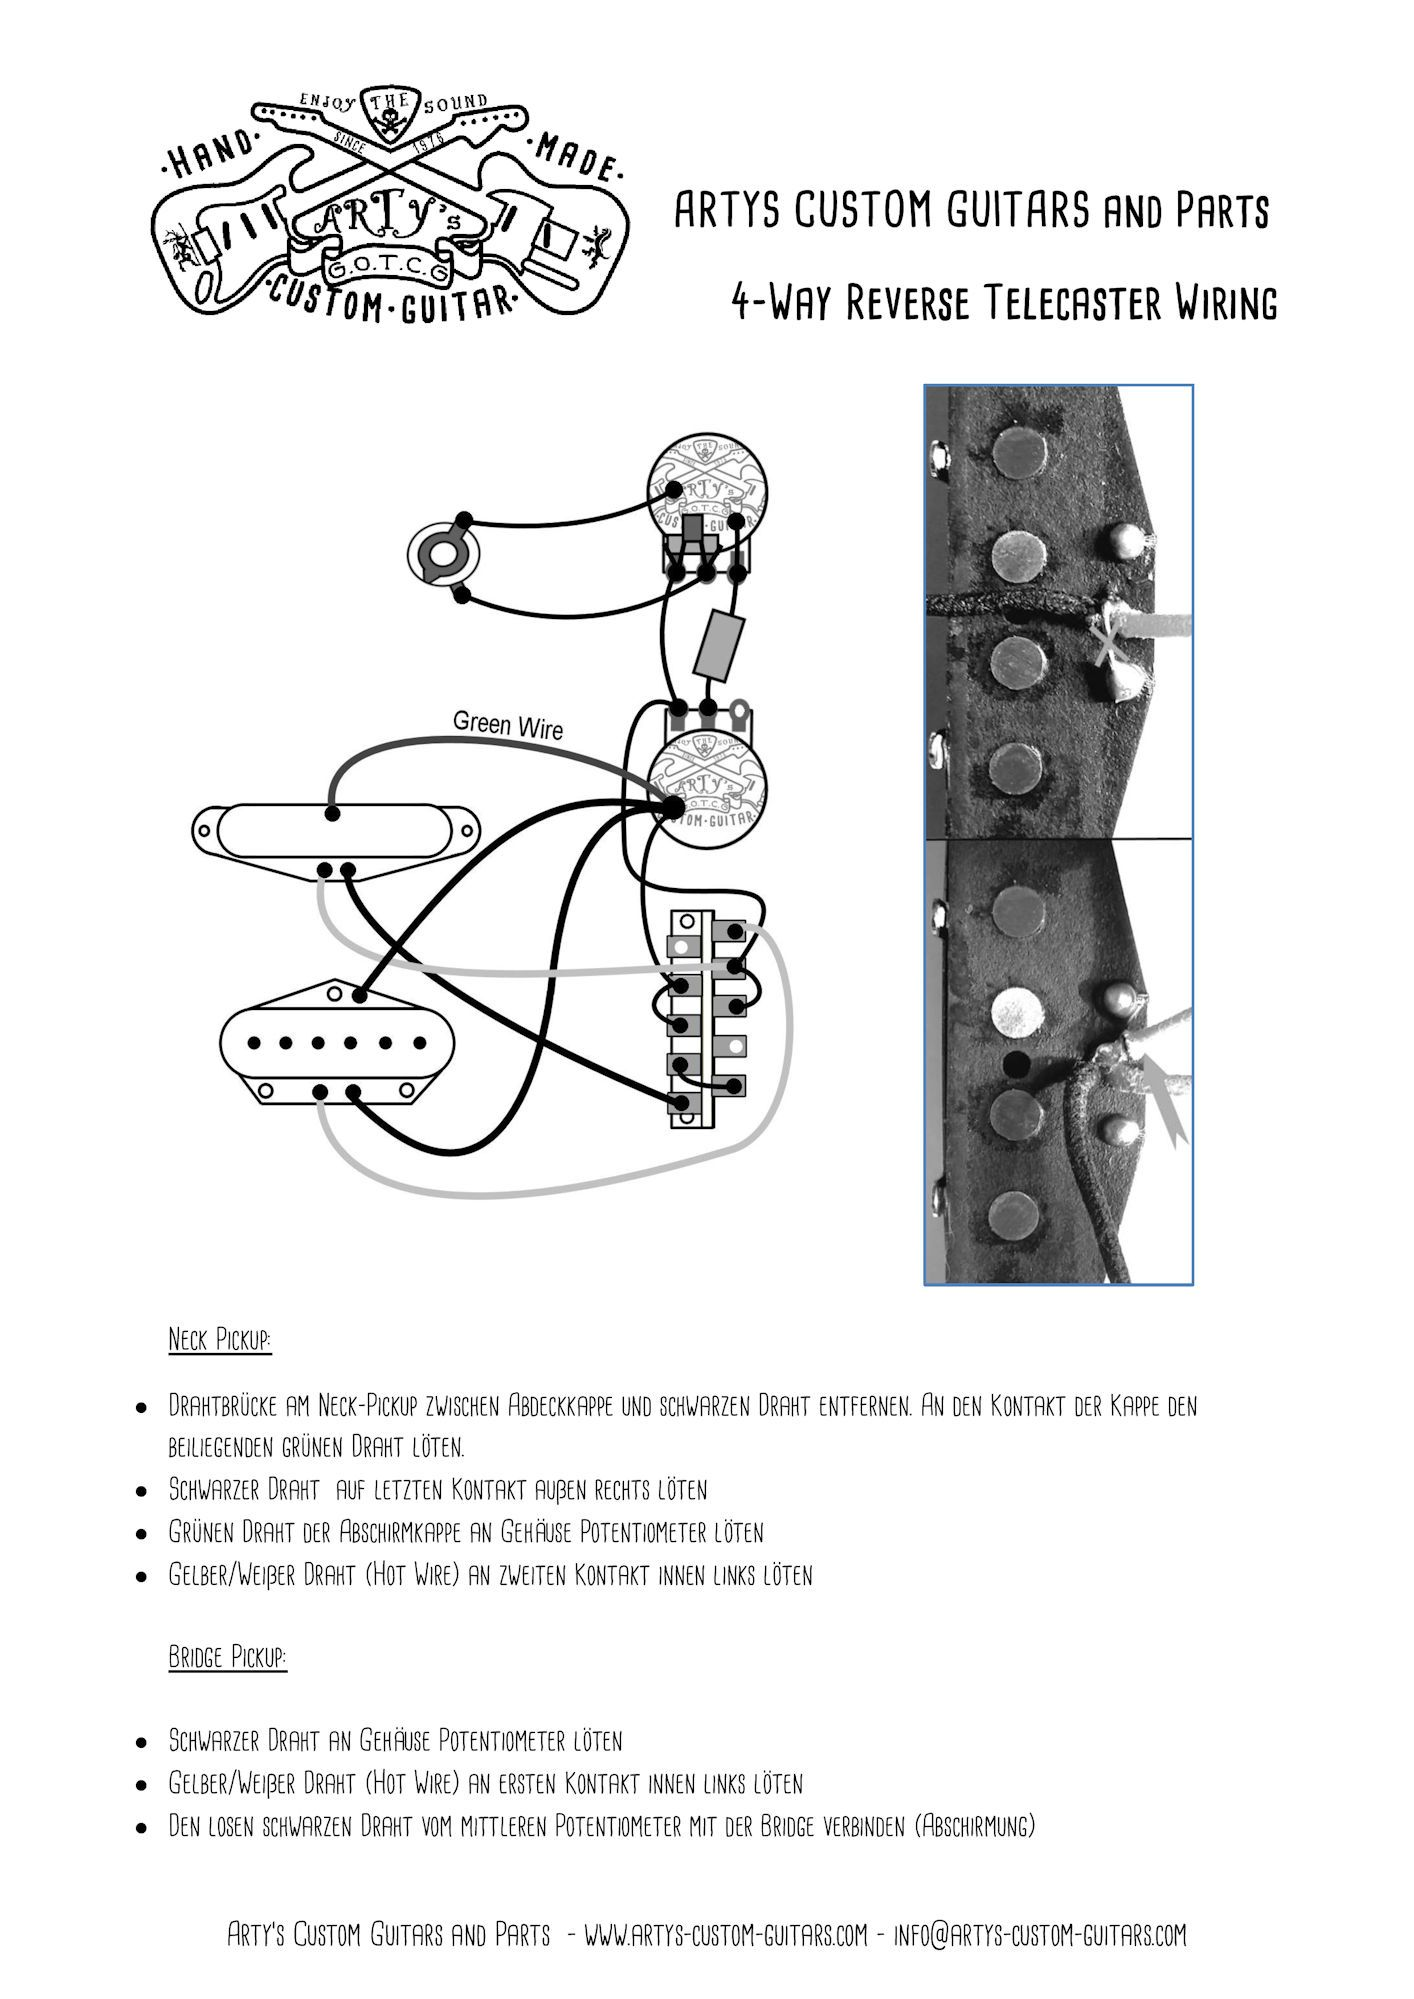 497c7bfde440da0c731b70fa3253046a arty's custom guitars wiring diagram 4 way reverse control plate Osterizer Blender Schematics at bayanpartner.co